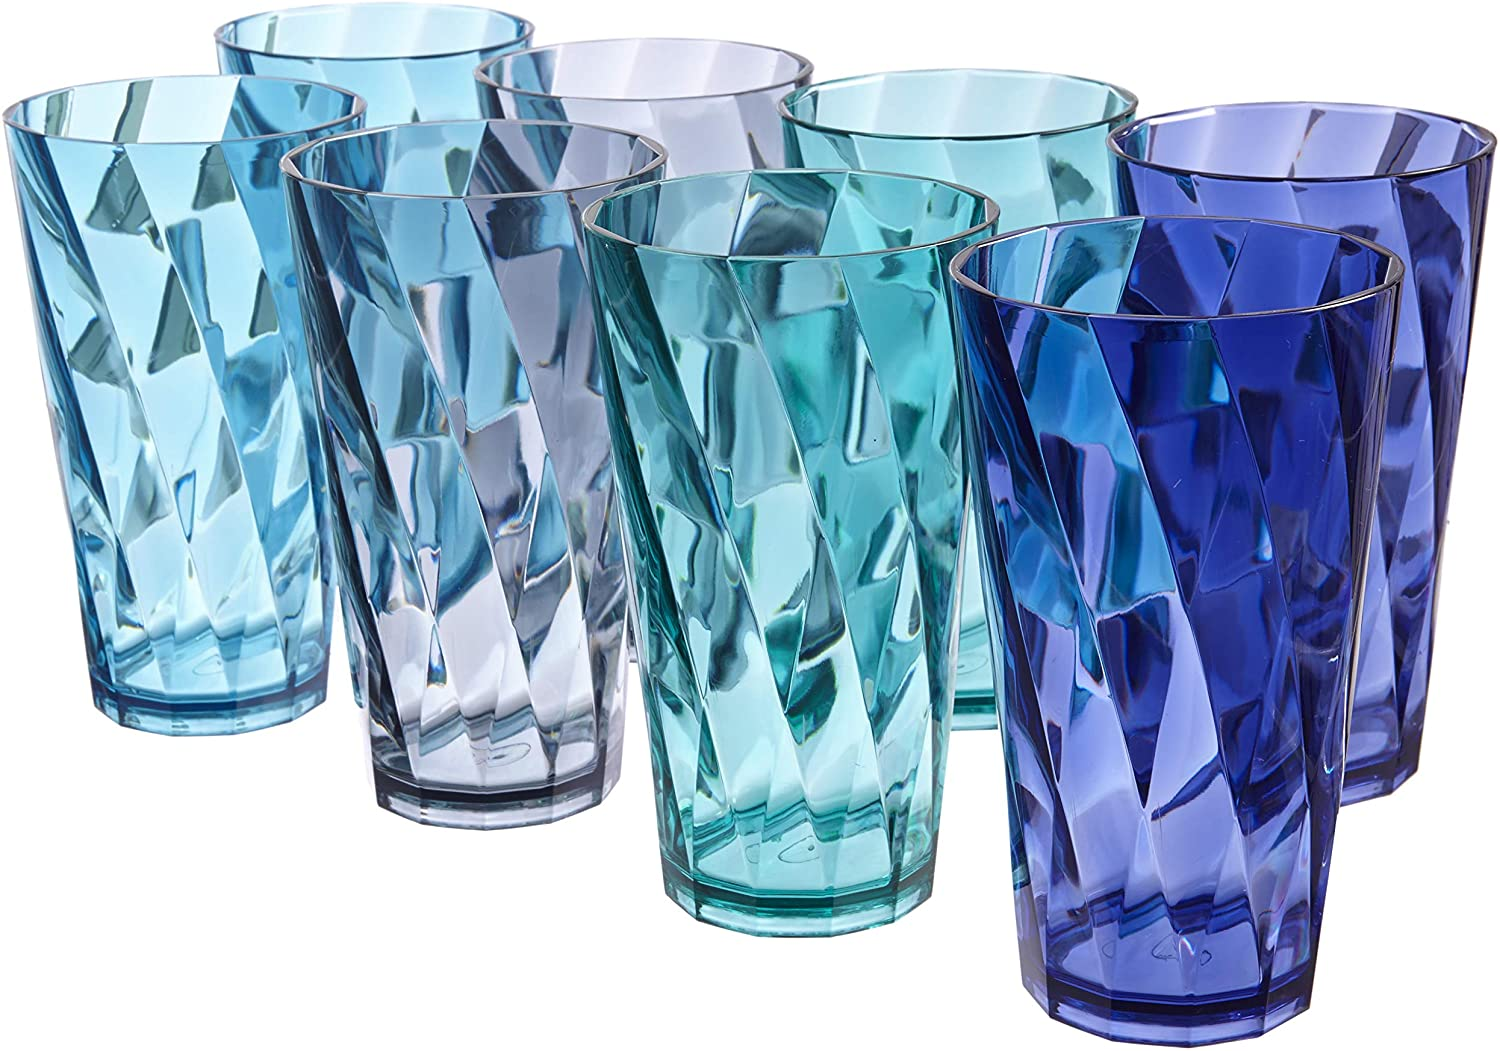 Optix 20-ounce Plastic Tumblers set of Coastal in Mesa Mall 8 4 Colors Shipping included